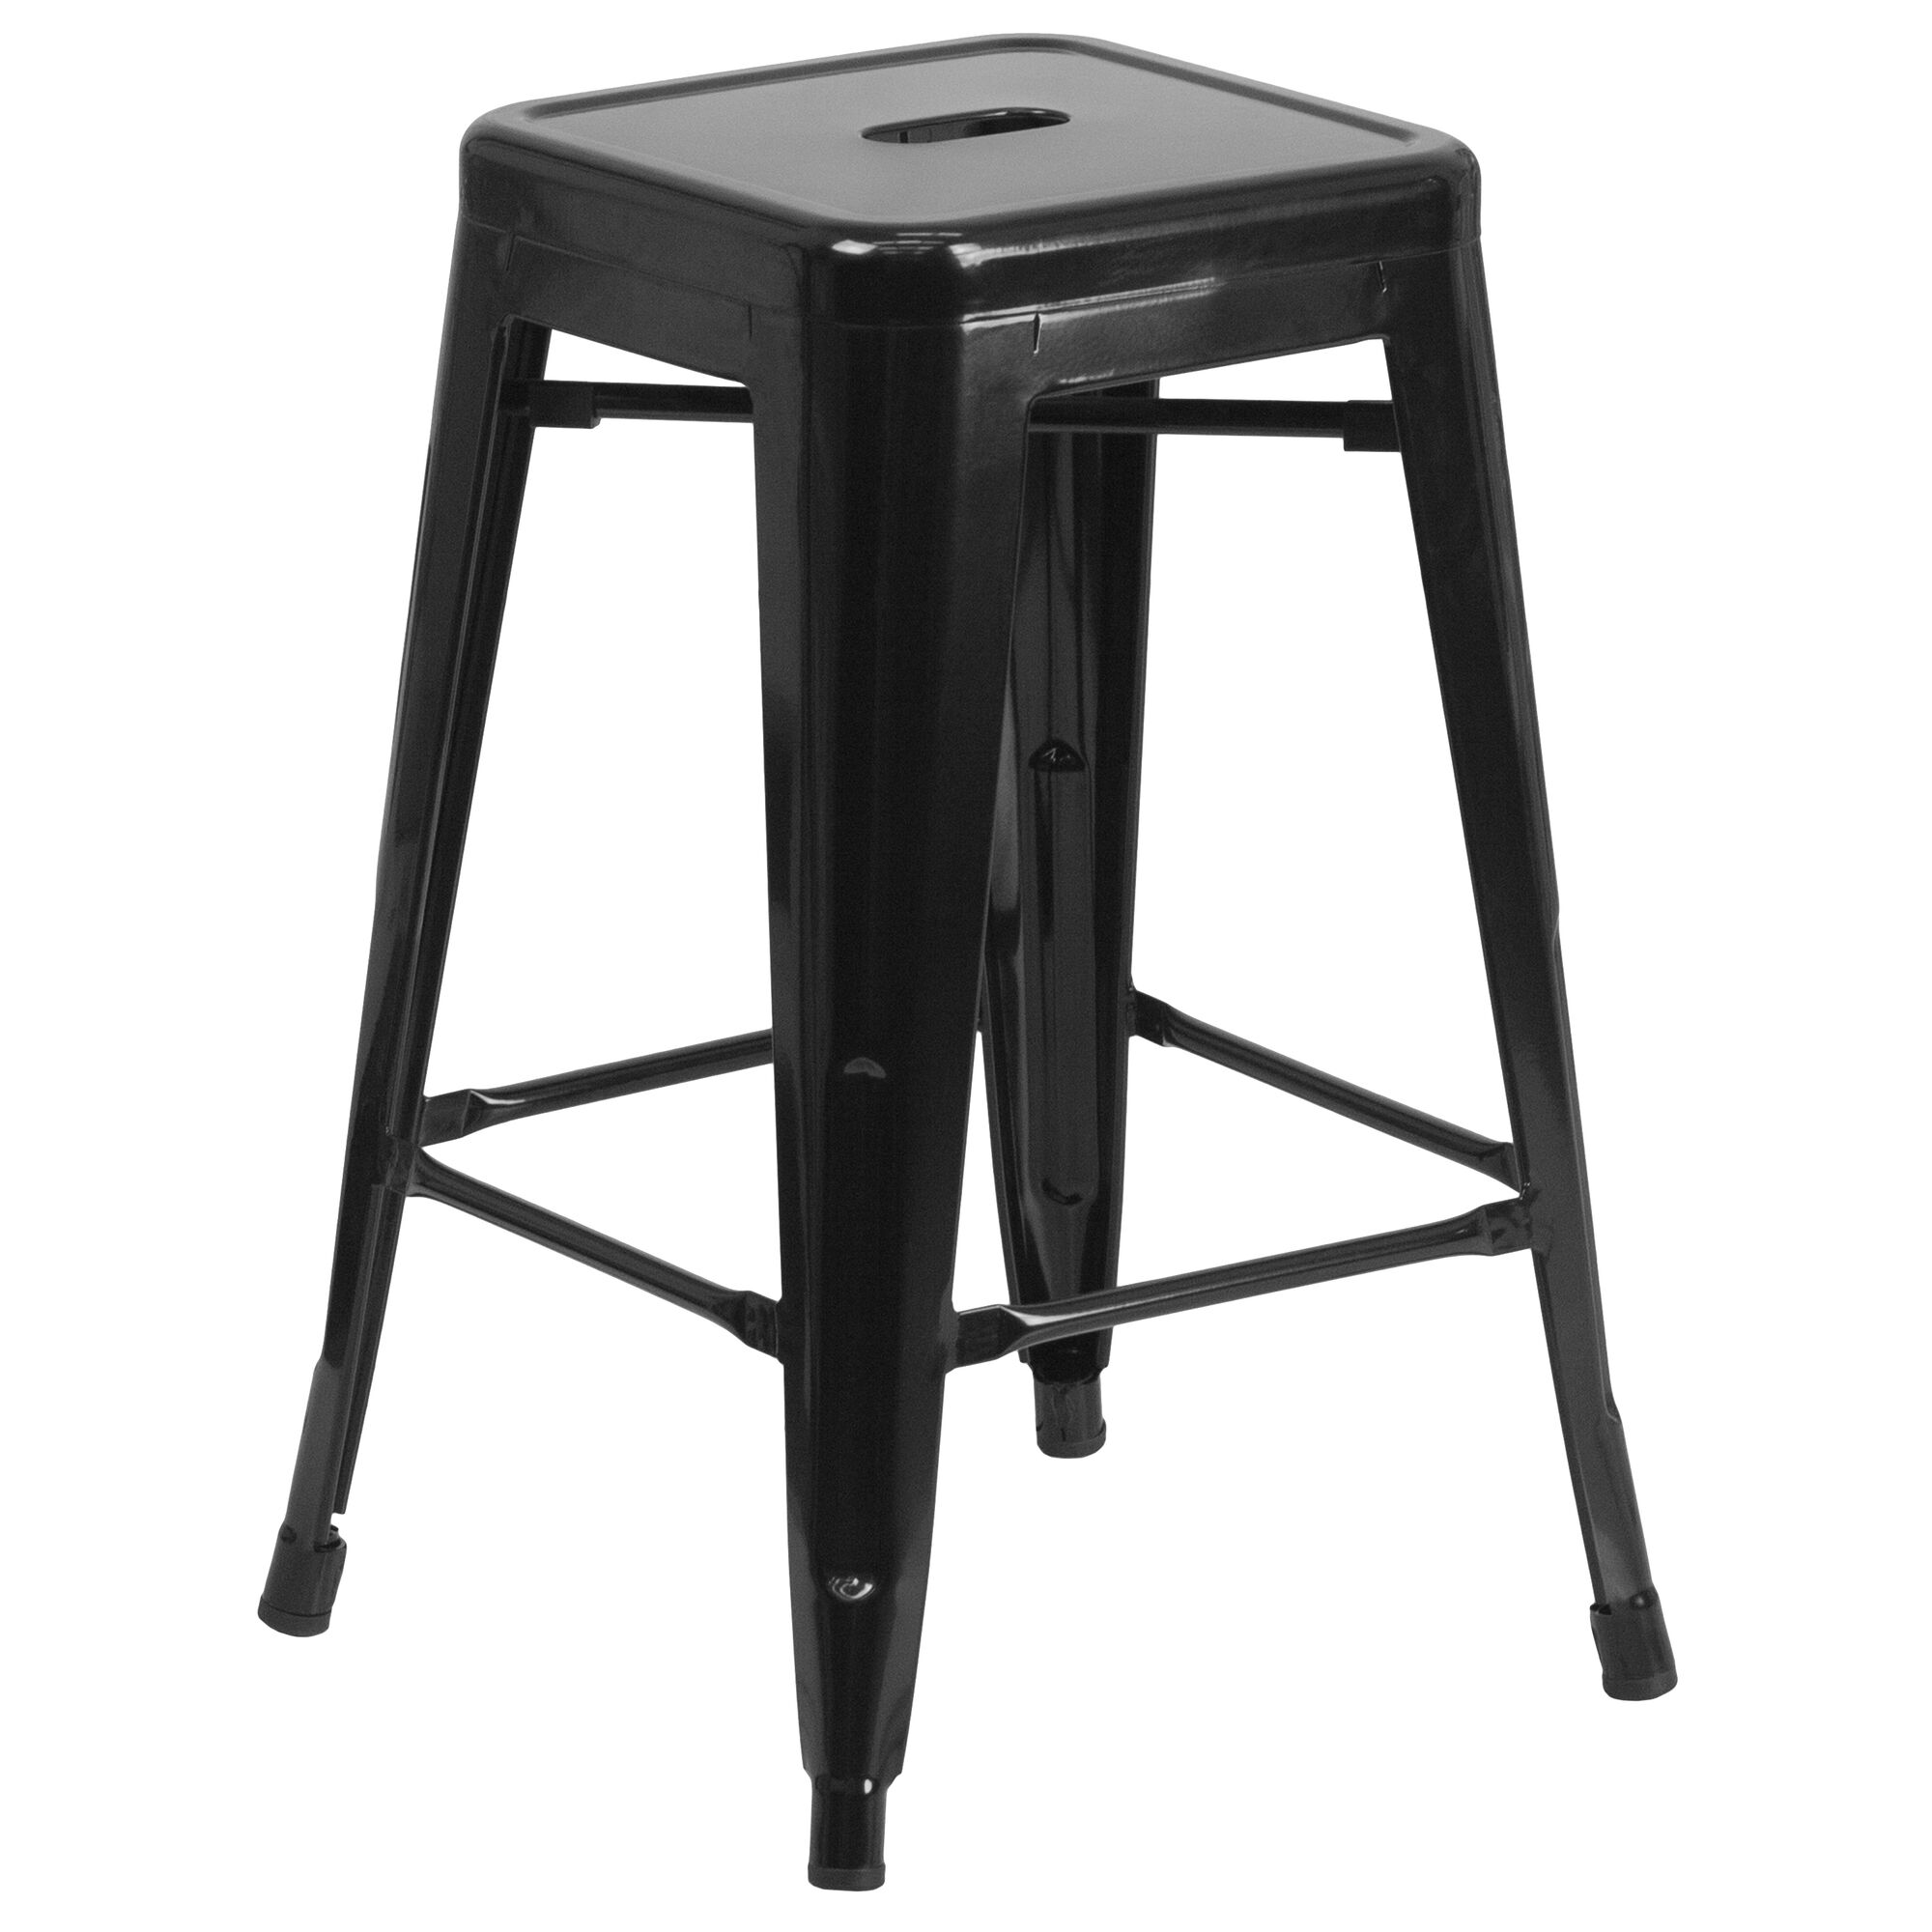 Stupendous Commercial Grade 24 High Backless Black Metal Indoor Outdoor Counter Height Stool With Square Seat Ibusinesslaw Wood Chair Design Ideas Ibusinesslaworg